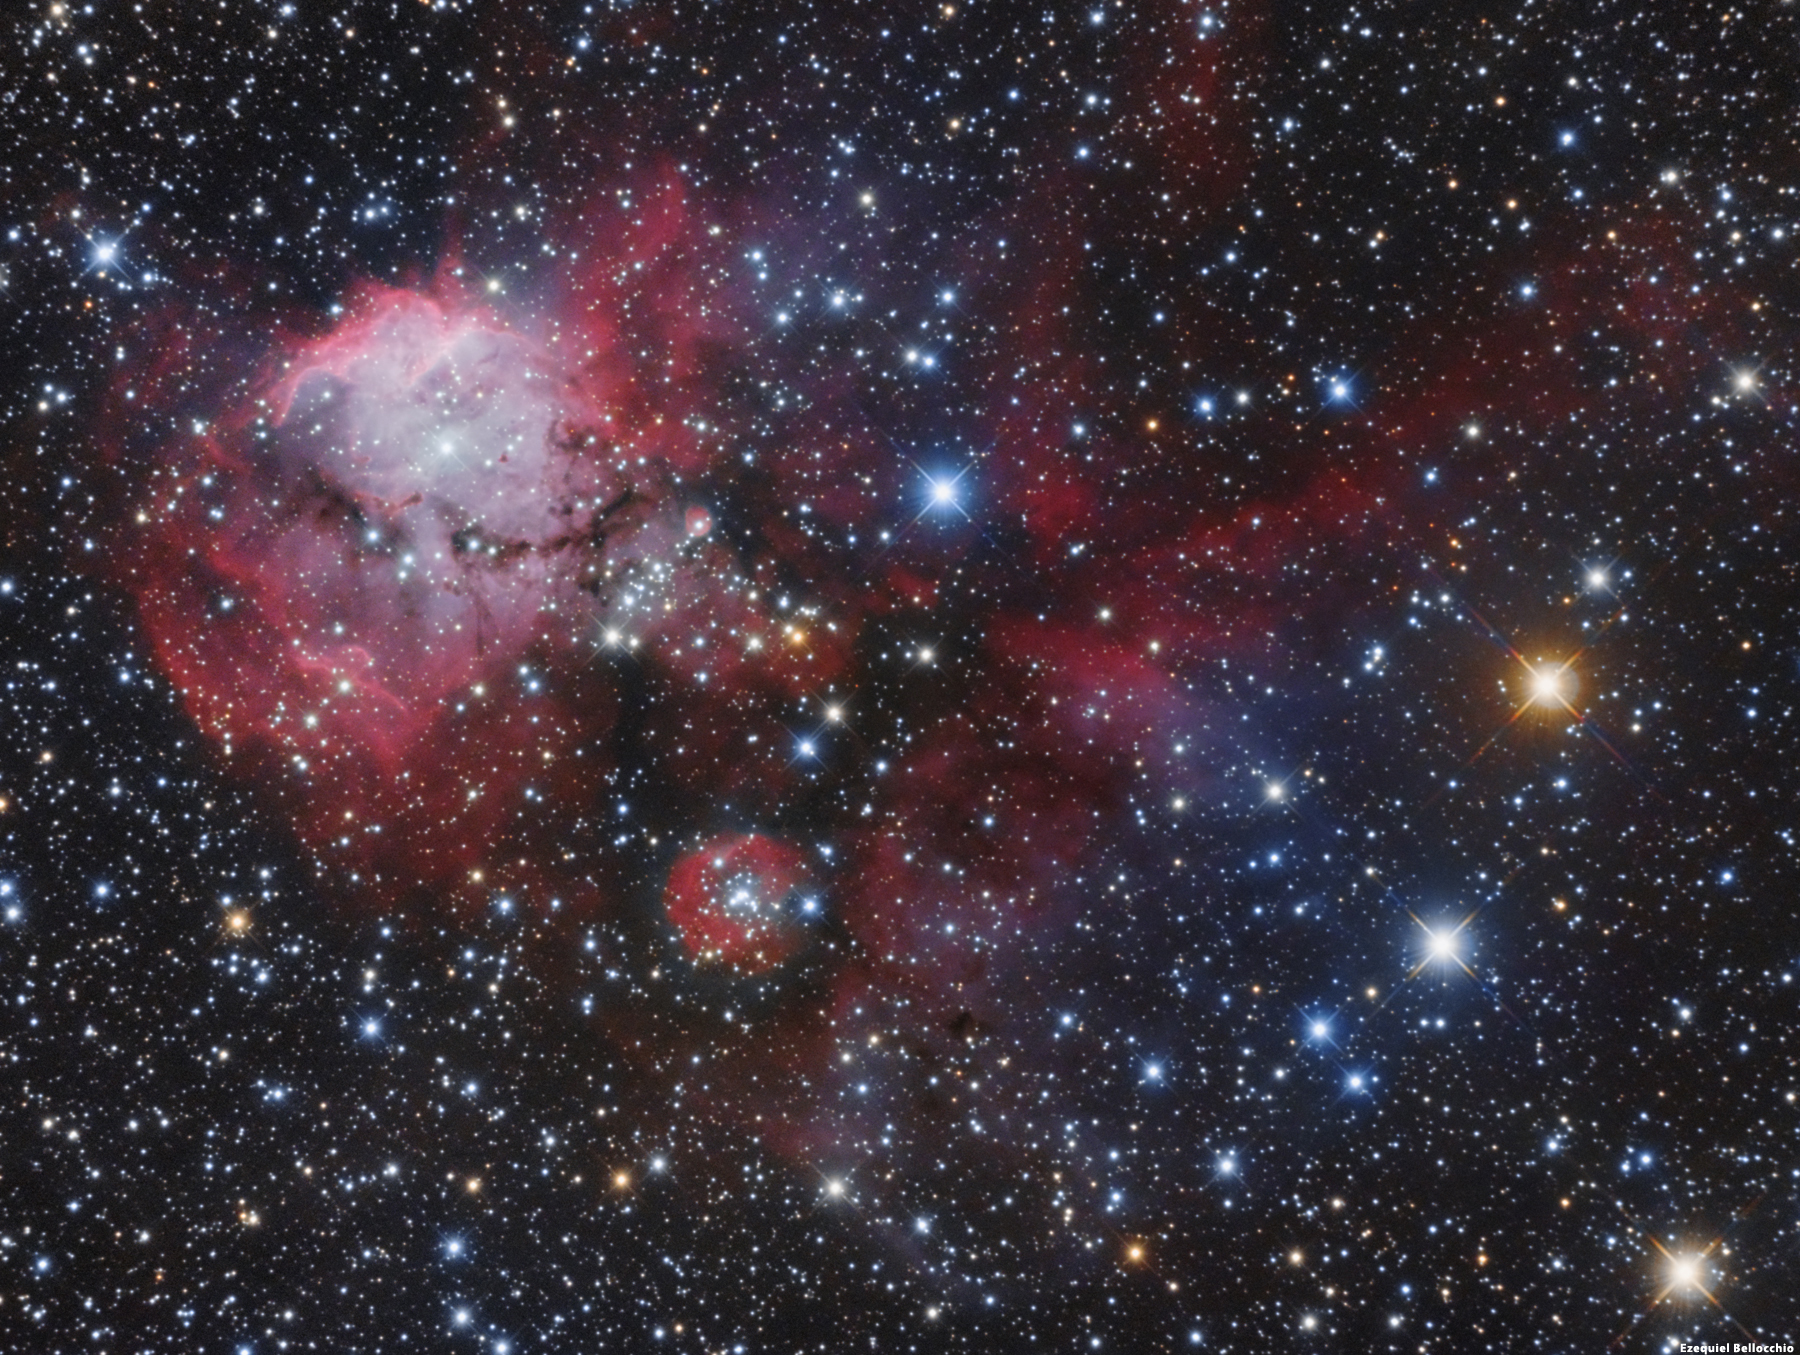 APOD: 2005 January 31 - NGC 2467: From Gas to Stars